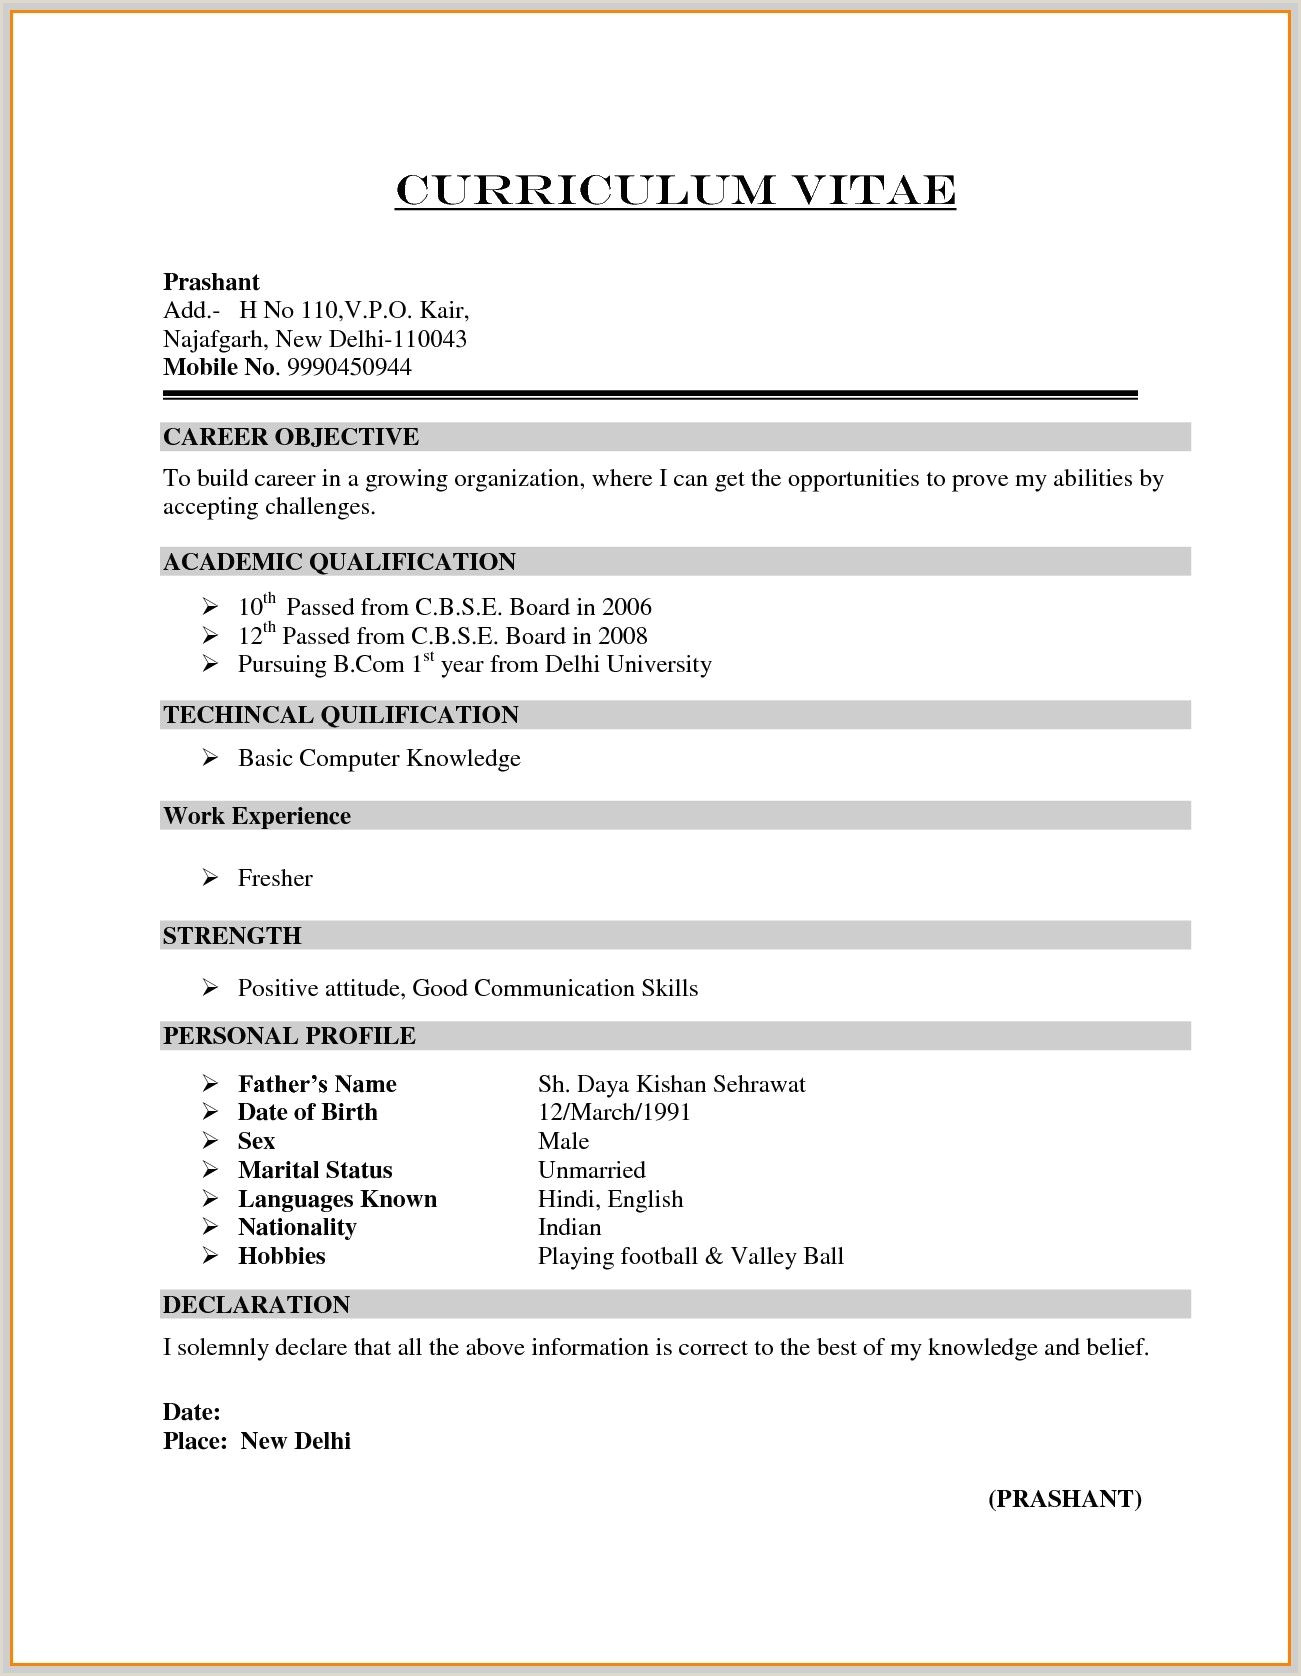 Resume format for Job Fresher Doc Image Result for Resume format for B Freshers